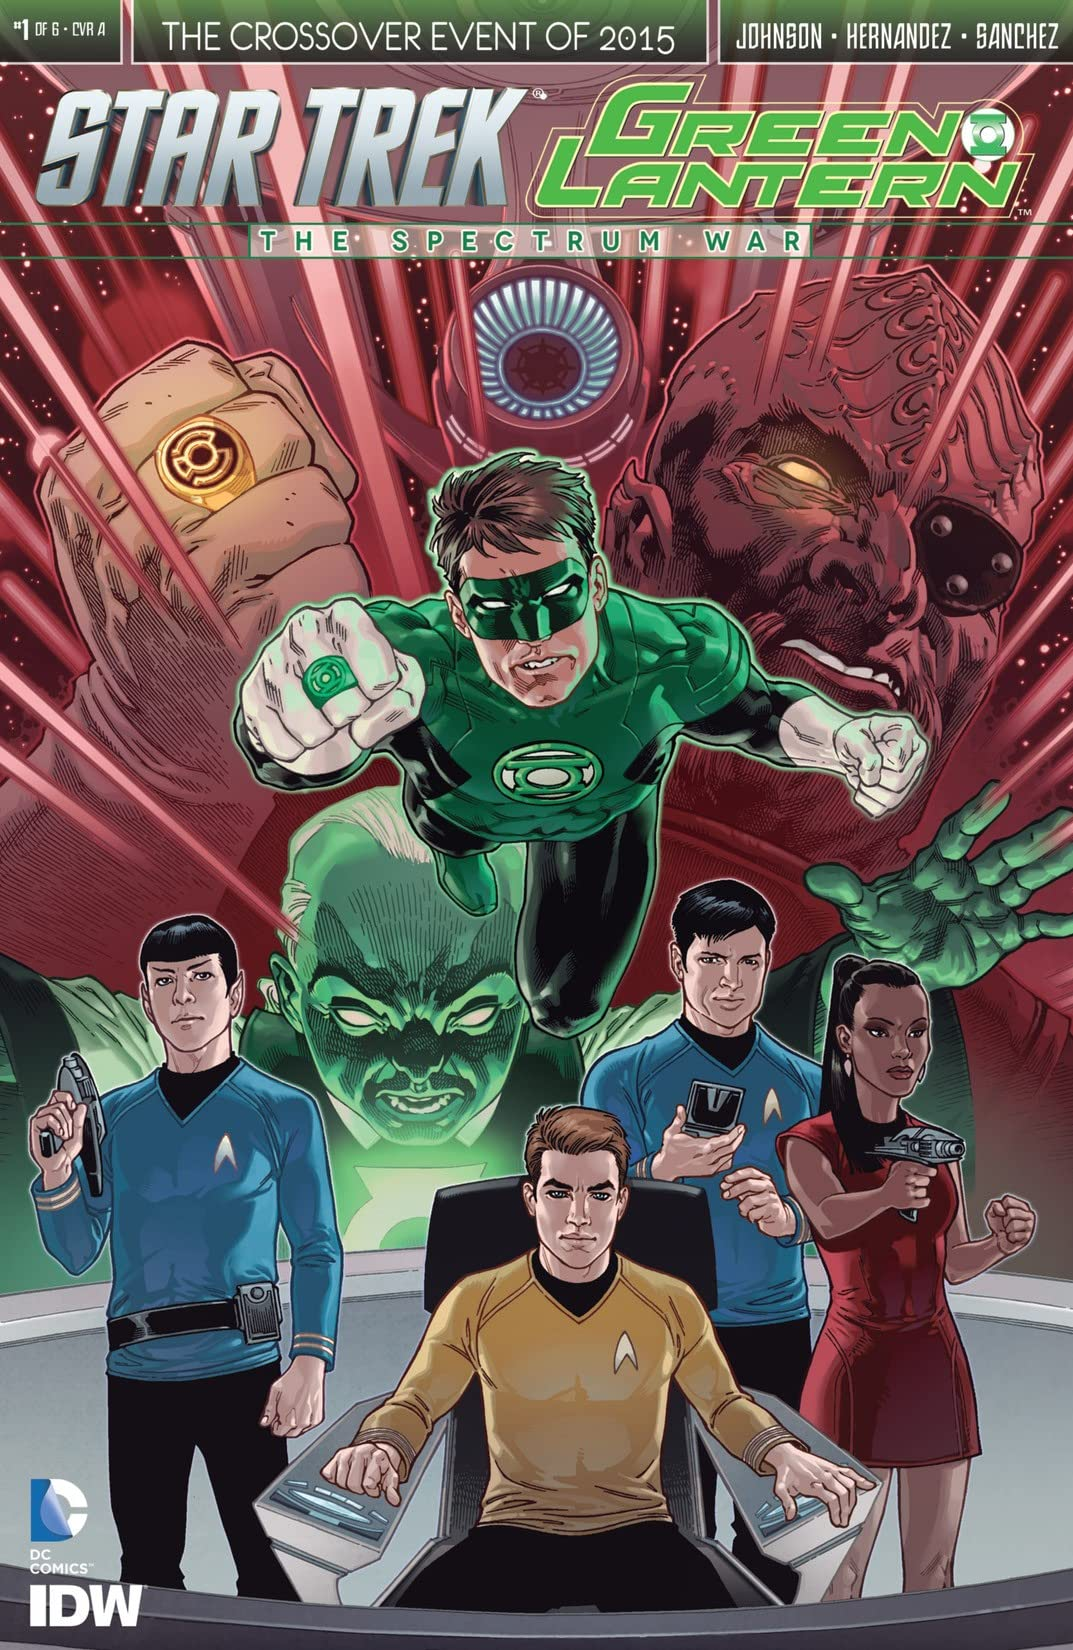 Star Trek/Green Lantern #1 (of 6)